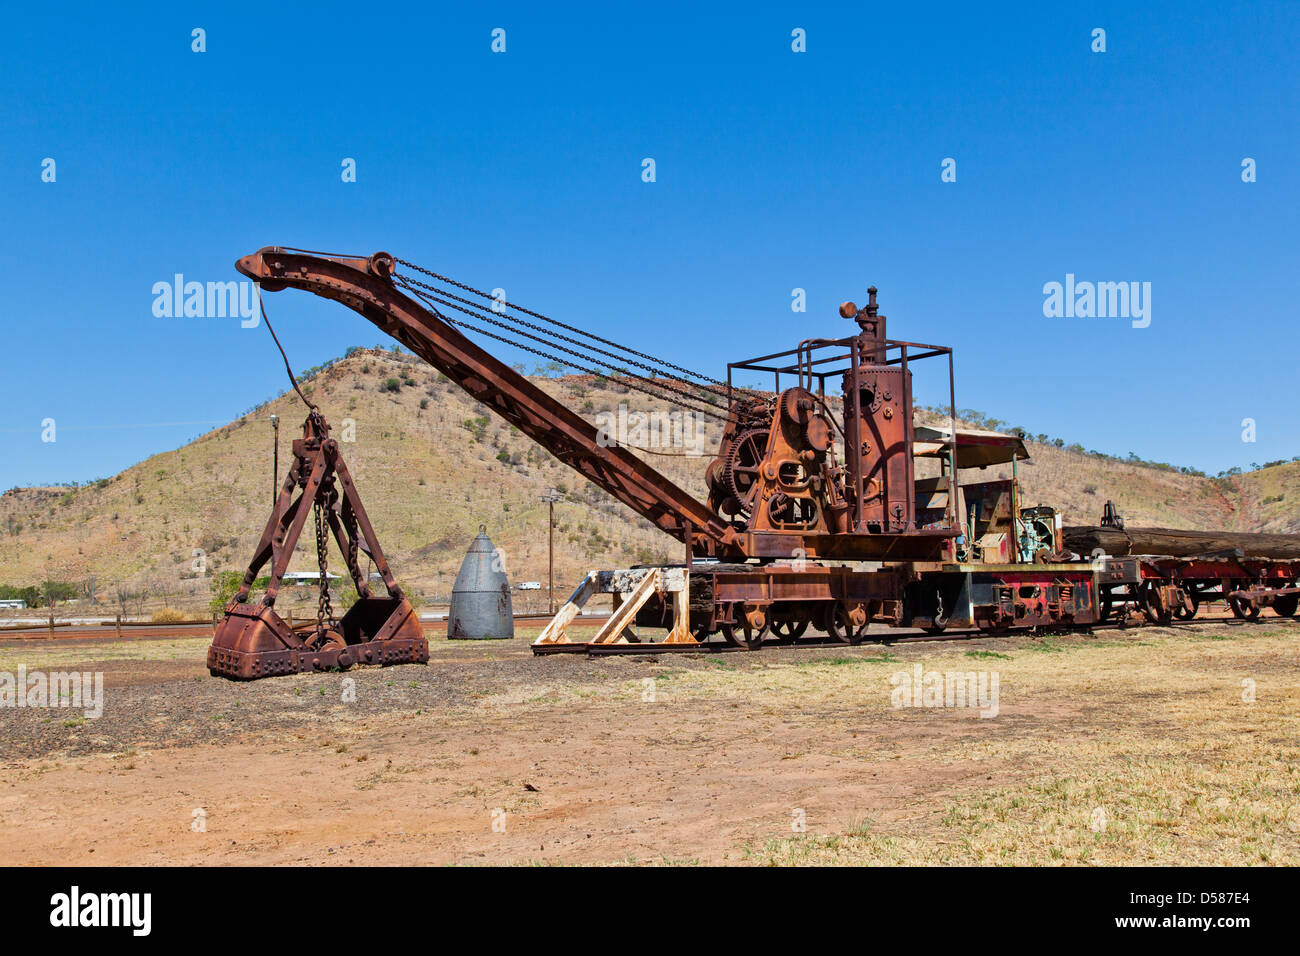 Australia, Western Australia, Wyndham, Wyndham Port, disused machinery of the meatworks train. - Stock Image